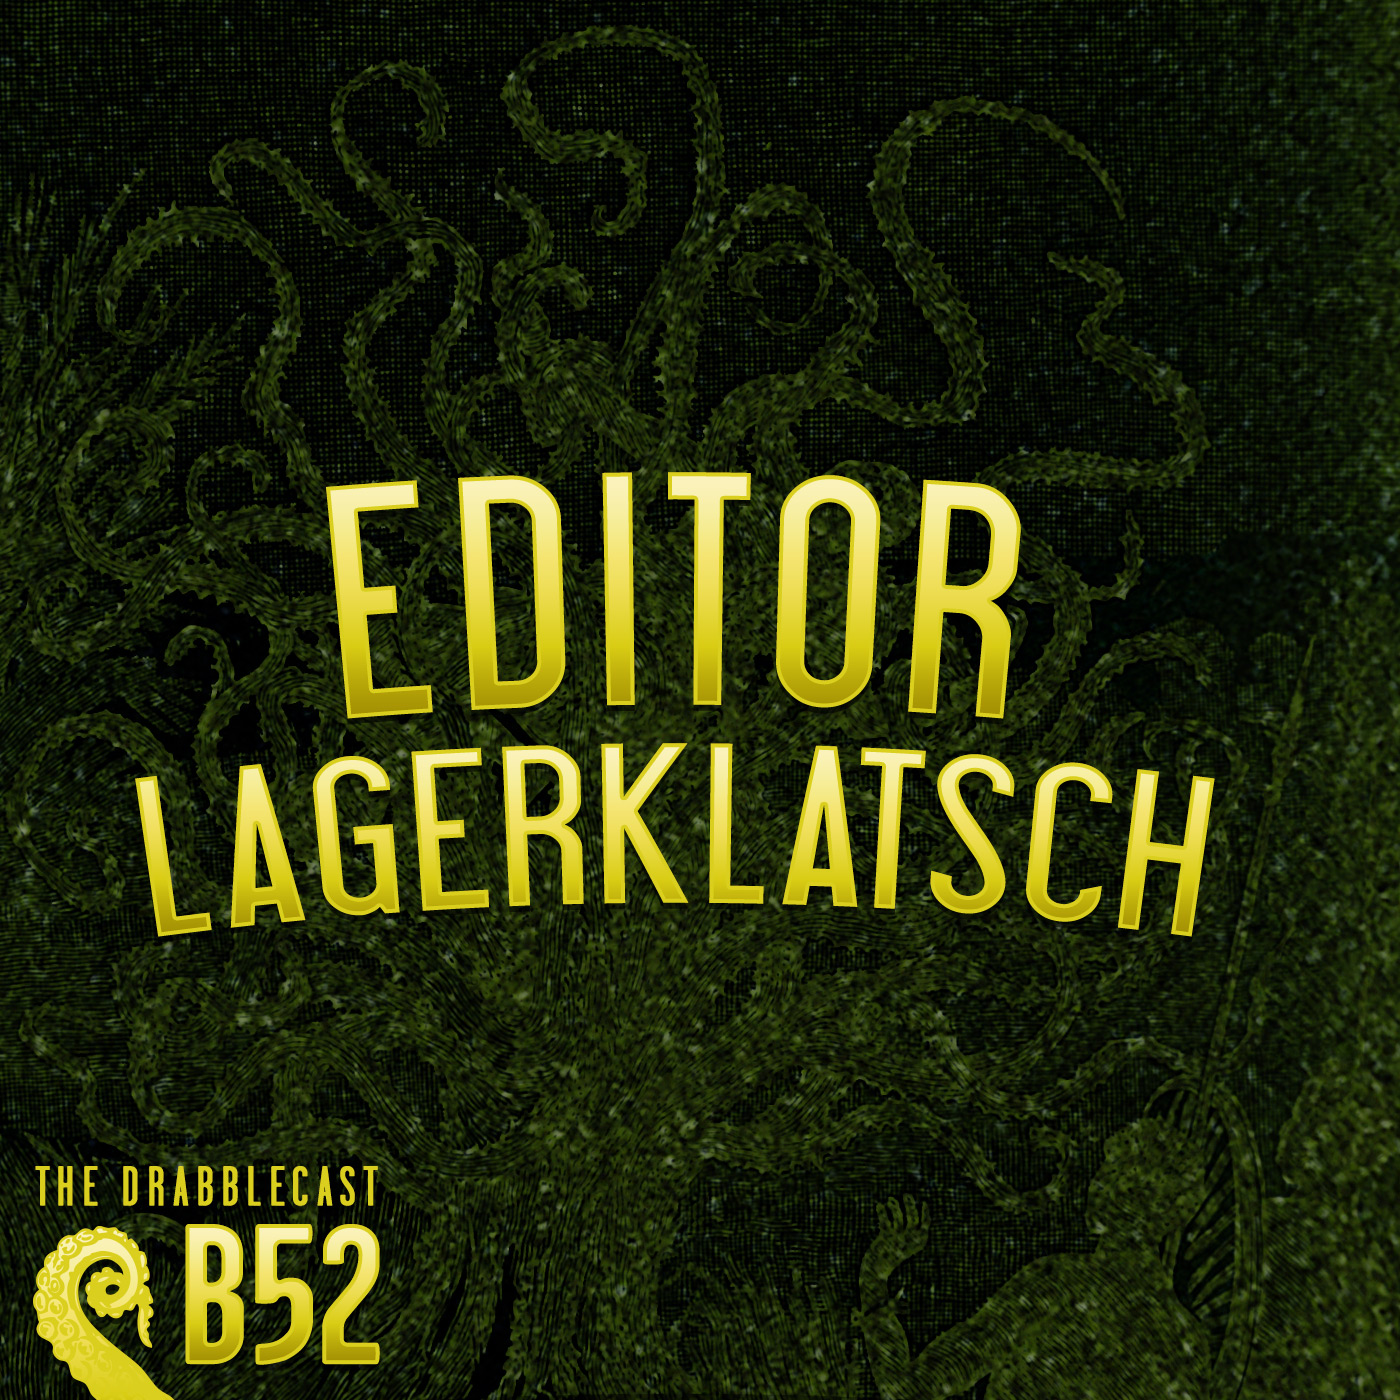 Cover for Drabblecast B-Sides 52, Editor Lagerklatsch